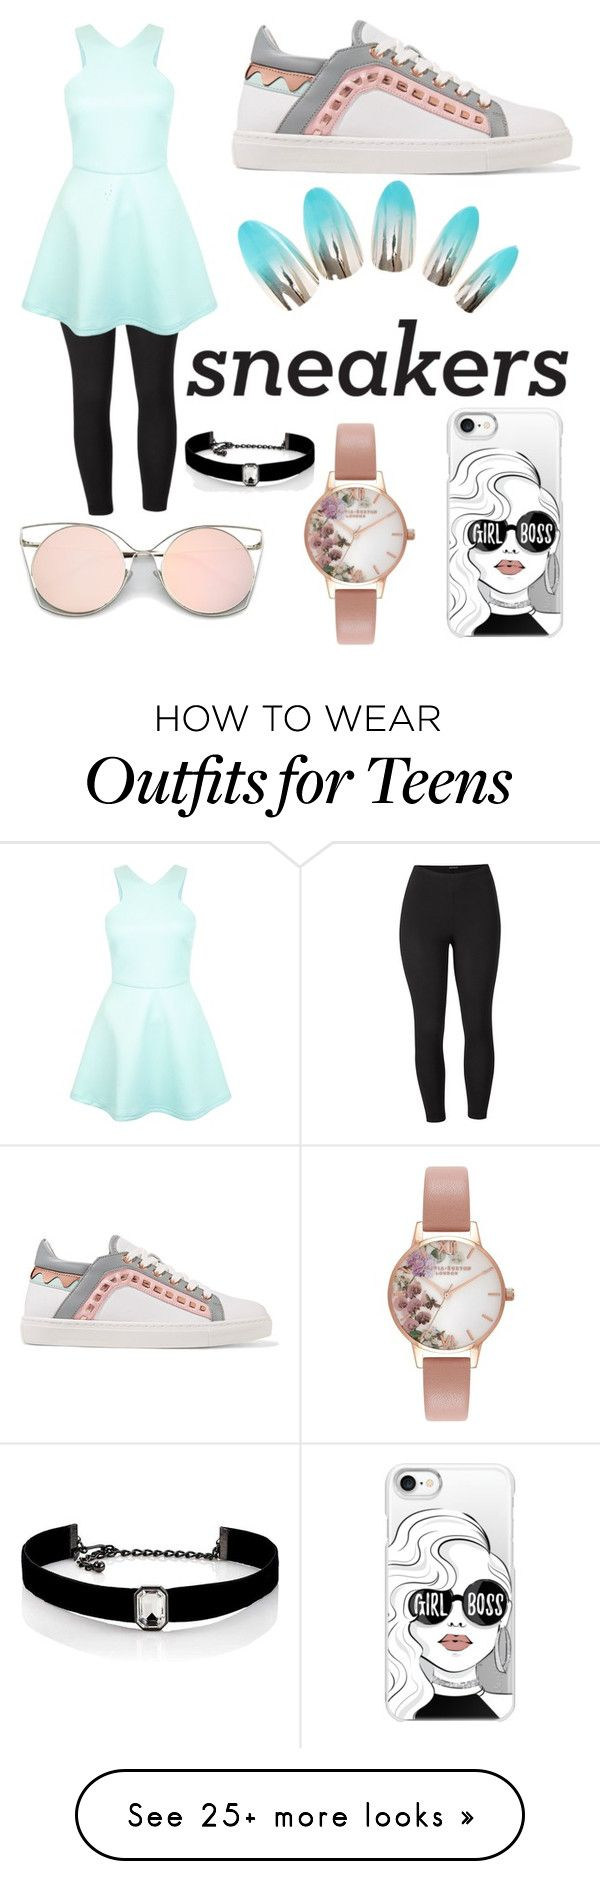 """Sneakers"" by uniqueclinique on Polyvore featuring Venus, Sophia Webster, Casetify, Olivia Burton, Kenneth Jay Lane and plus size clothing"